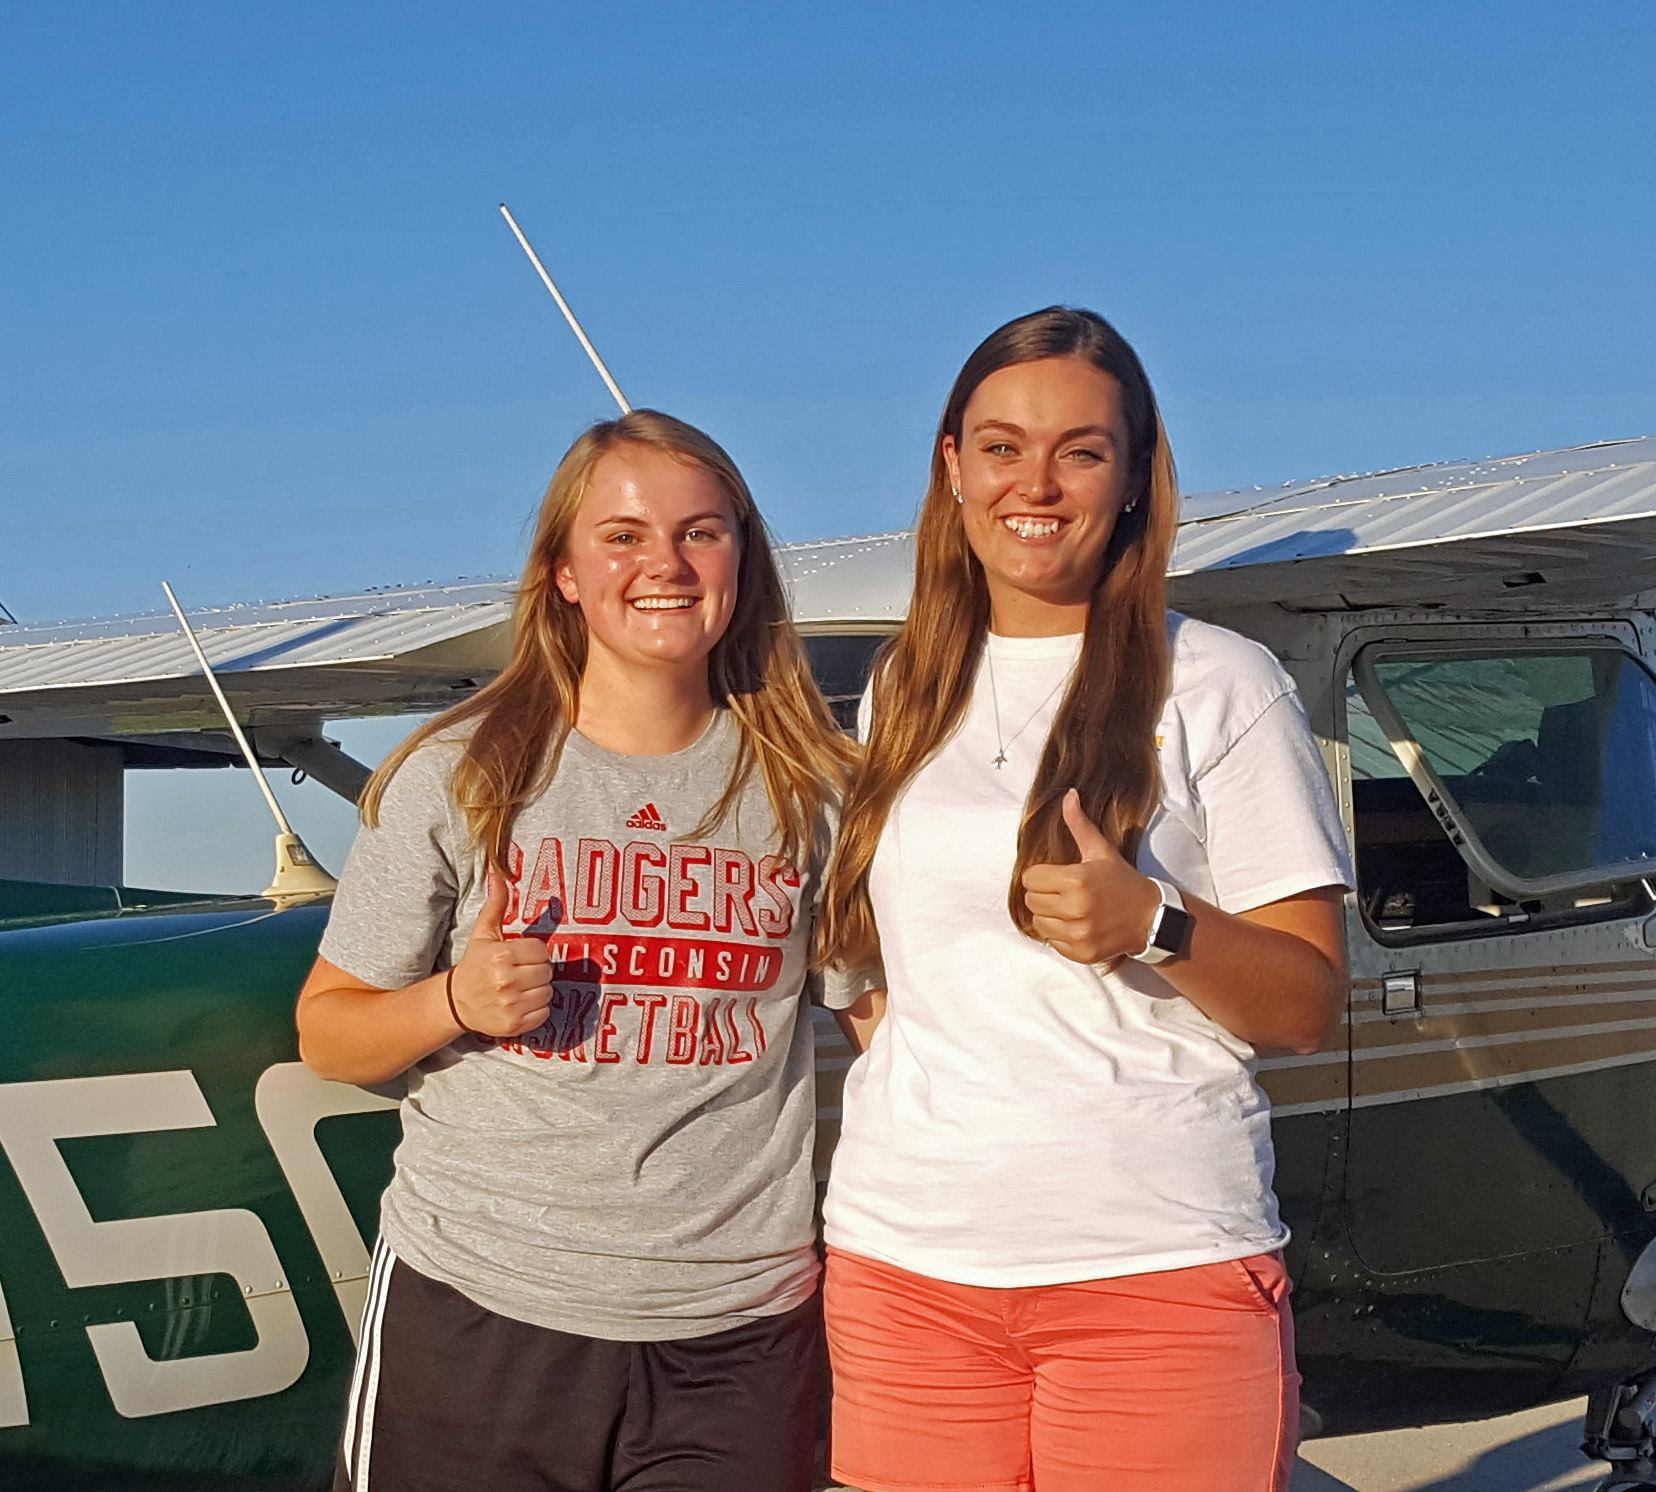 karly-meyers-poplar-grove-airport-pilot-flight-lessons